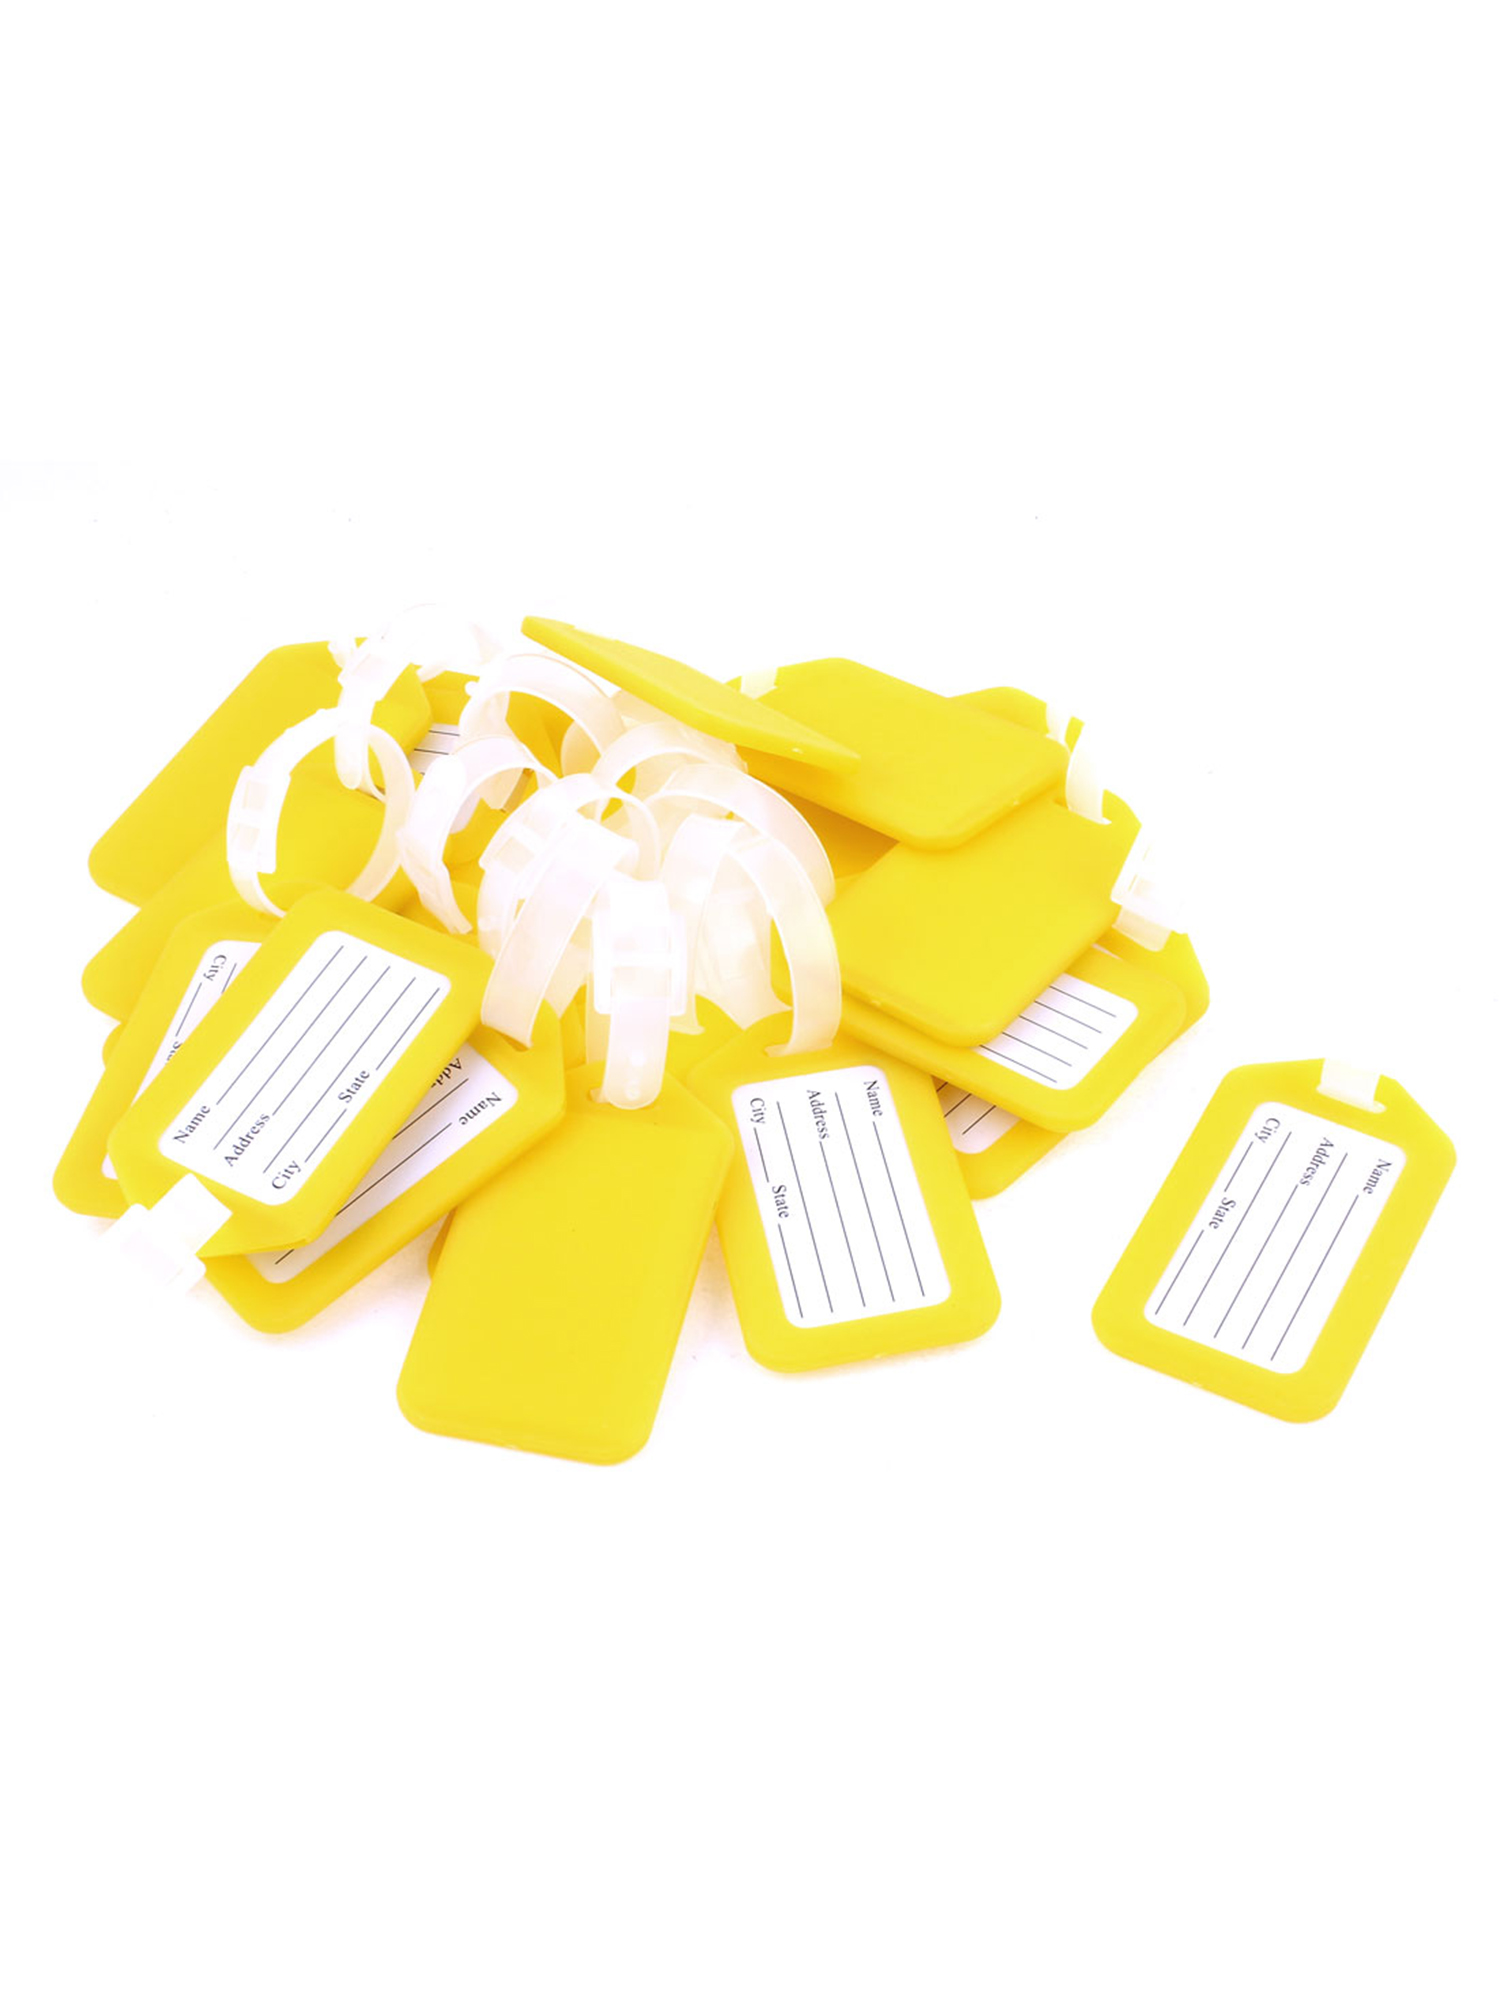 Unique Bargains 20 Pcs Yellow White Hard Plastic Suitcase Name Message Card Label Travel Luggage Tags